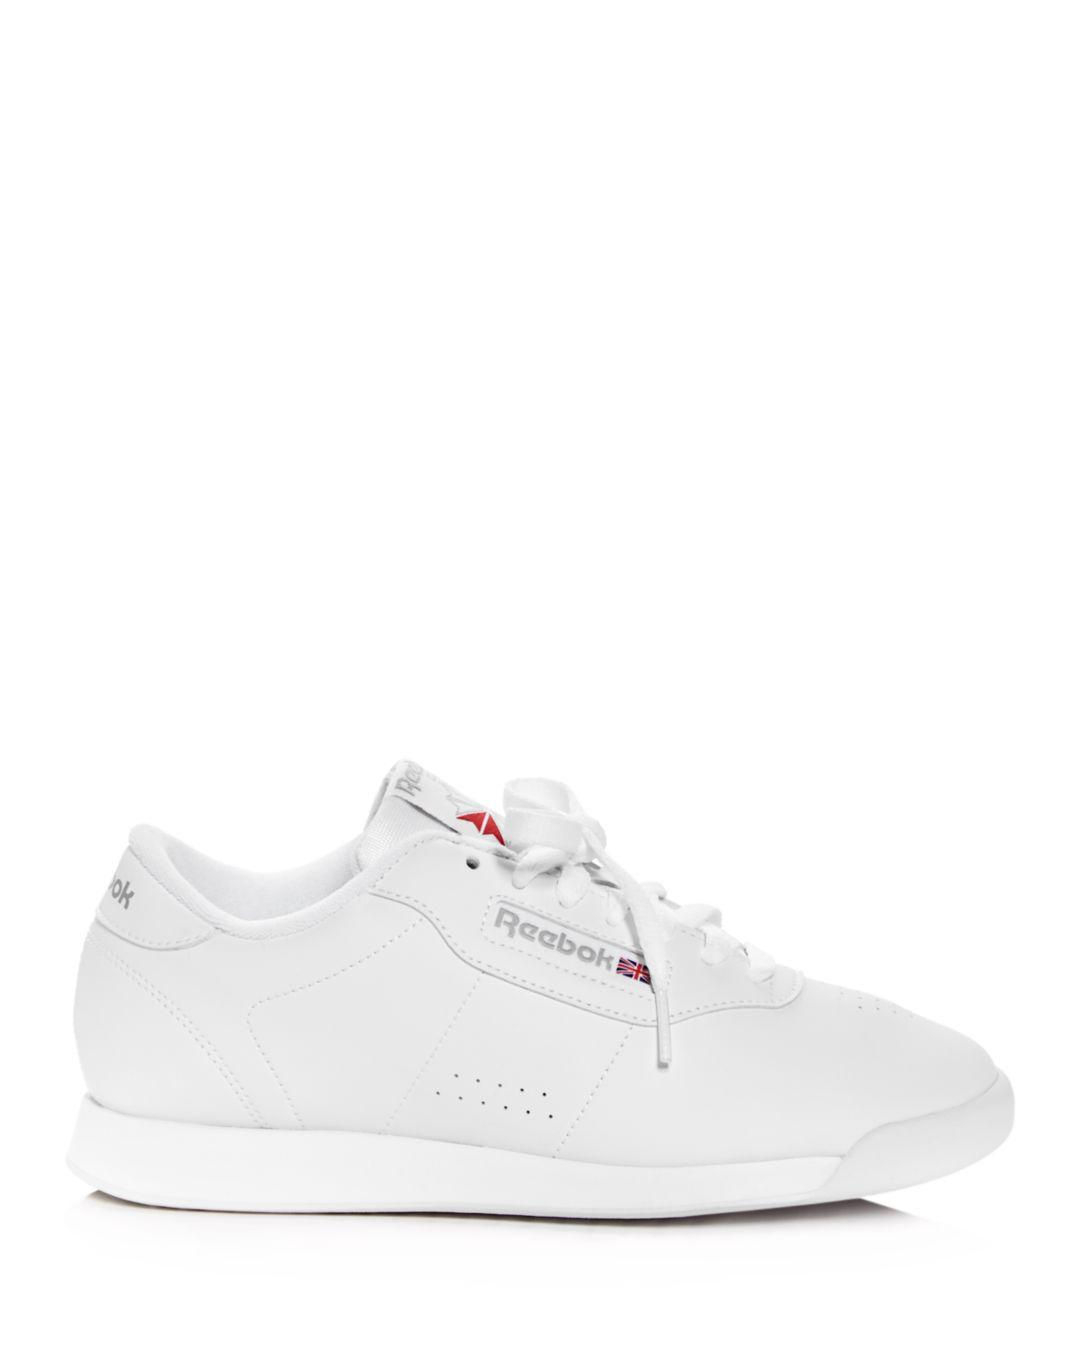 a78deda88449 Lyst - Reebok Women s Princess Faux Leather Lace Up Sneakers in White